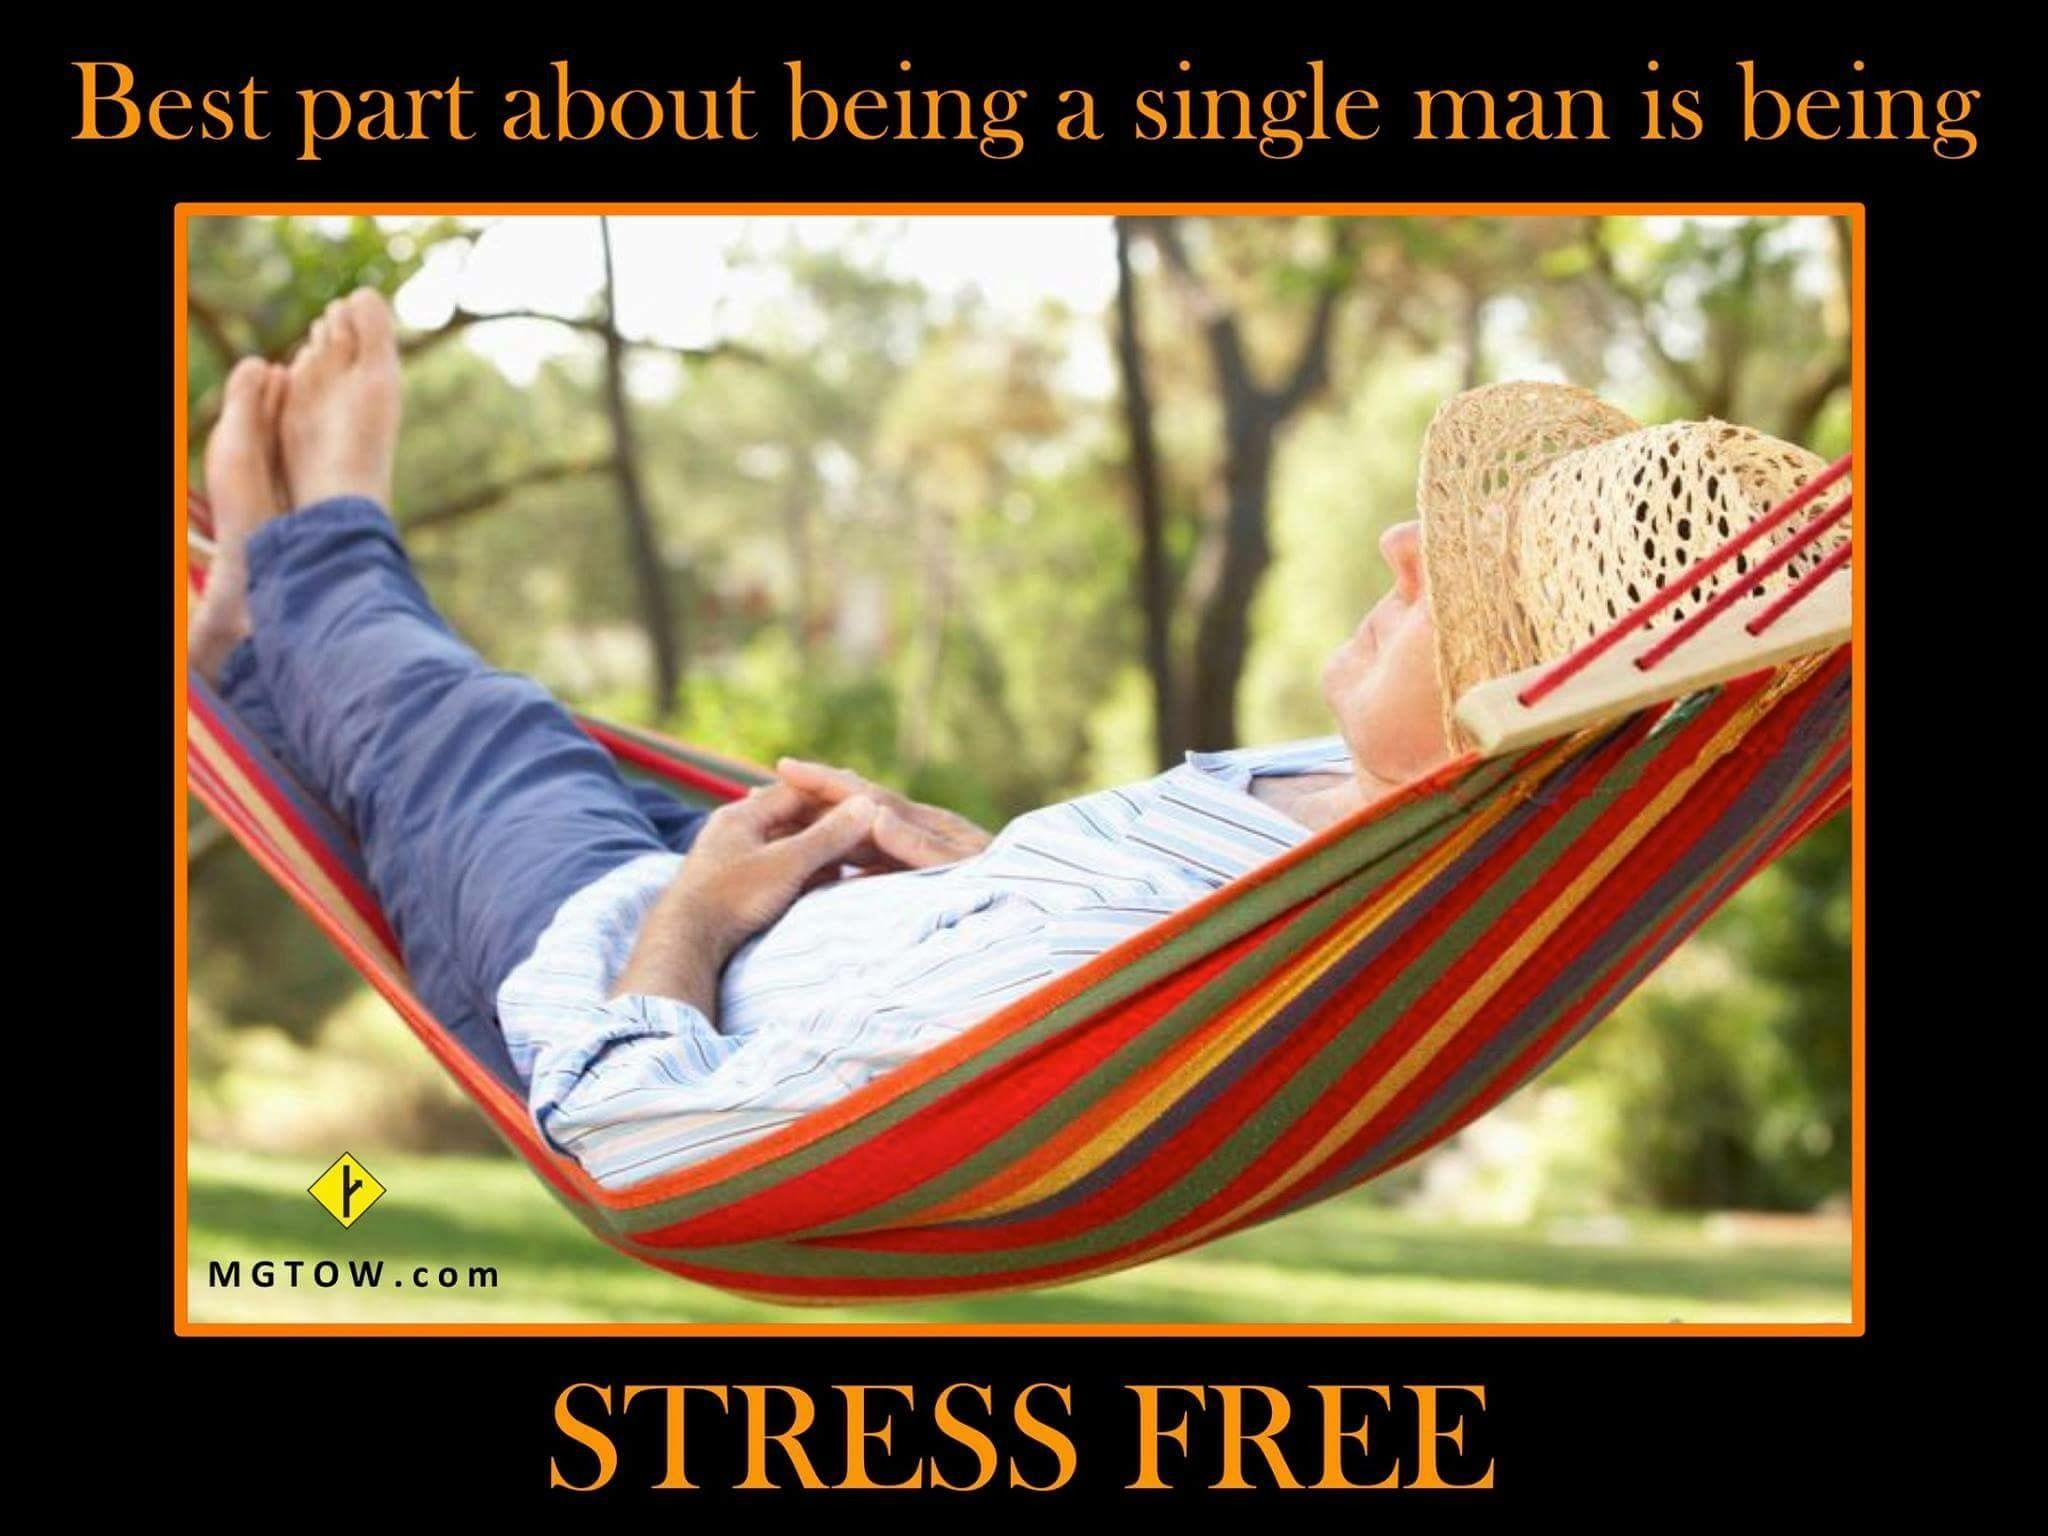 Single men live happier and longer #mgtow | Desired